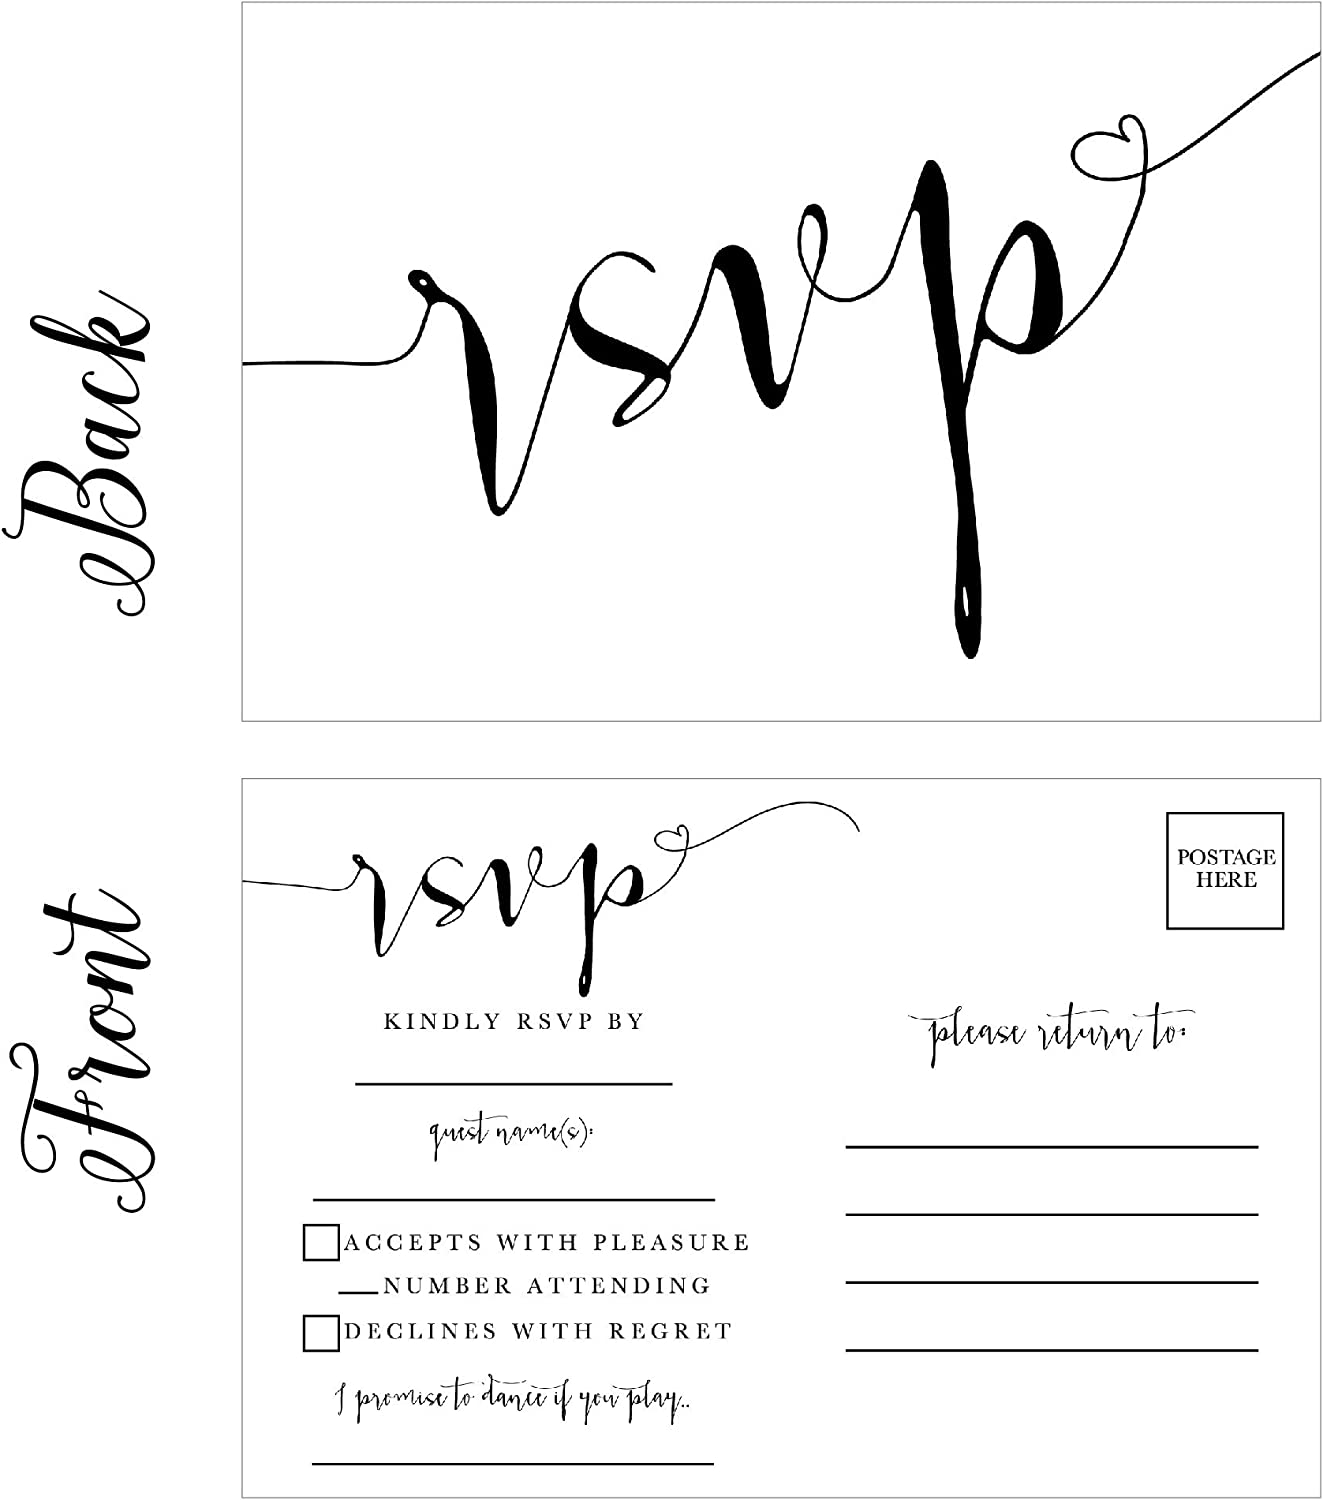 Amazon Com 50 Blank Rsvp Cards Rsvp Postcards No Envelopes Needed Response Card Rsvp Reply Rsvp For Wedding Rehearsal Dinner Baby Shower Bridal Shower Birthday Engagement Bachelorette Party Invitations Office Products